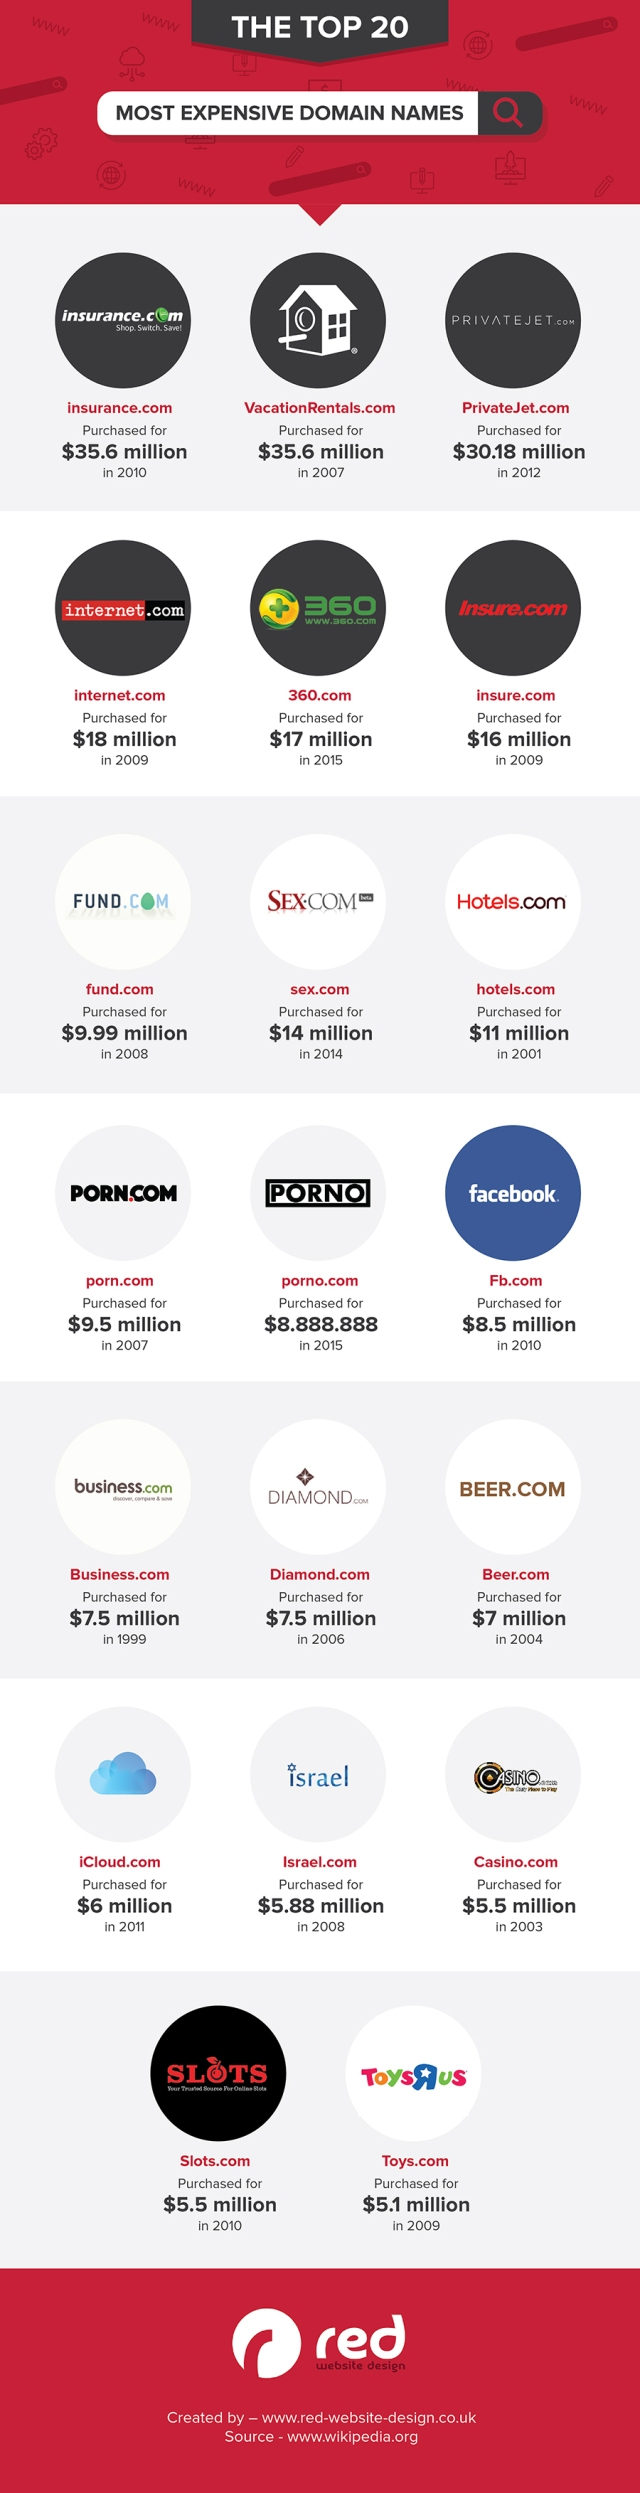 the-top-20-most-expensive-domain-names